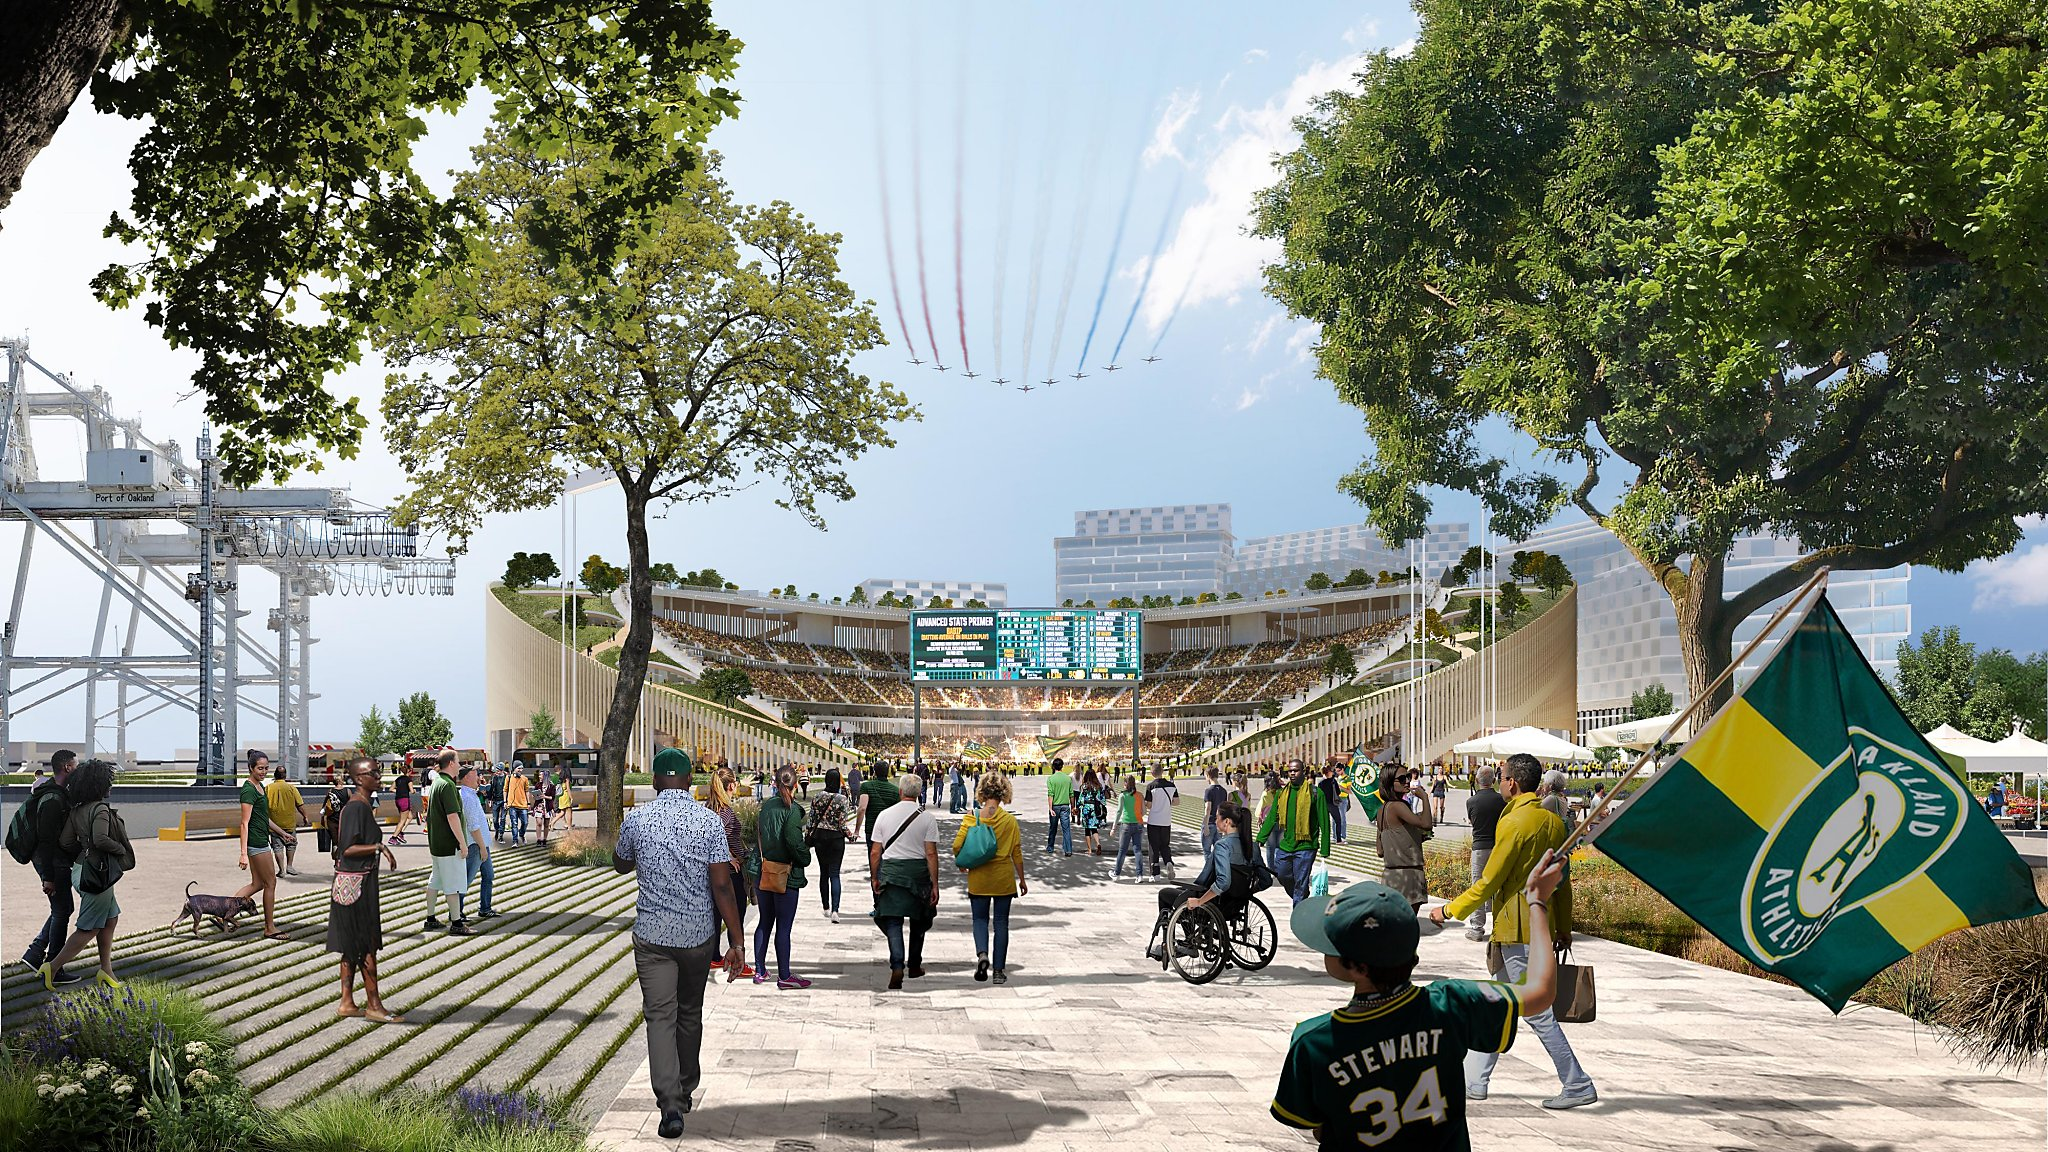 For all the talk of a pedestrian-friendly new A's stadium, fans expected to drive